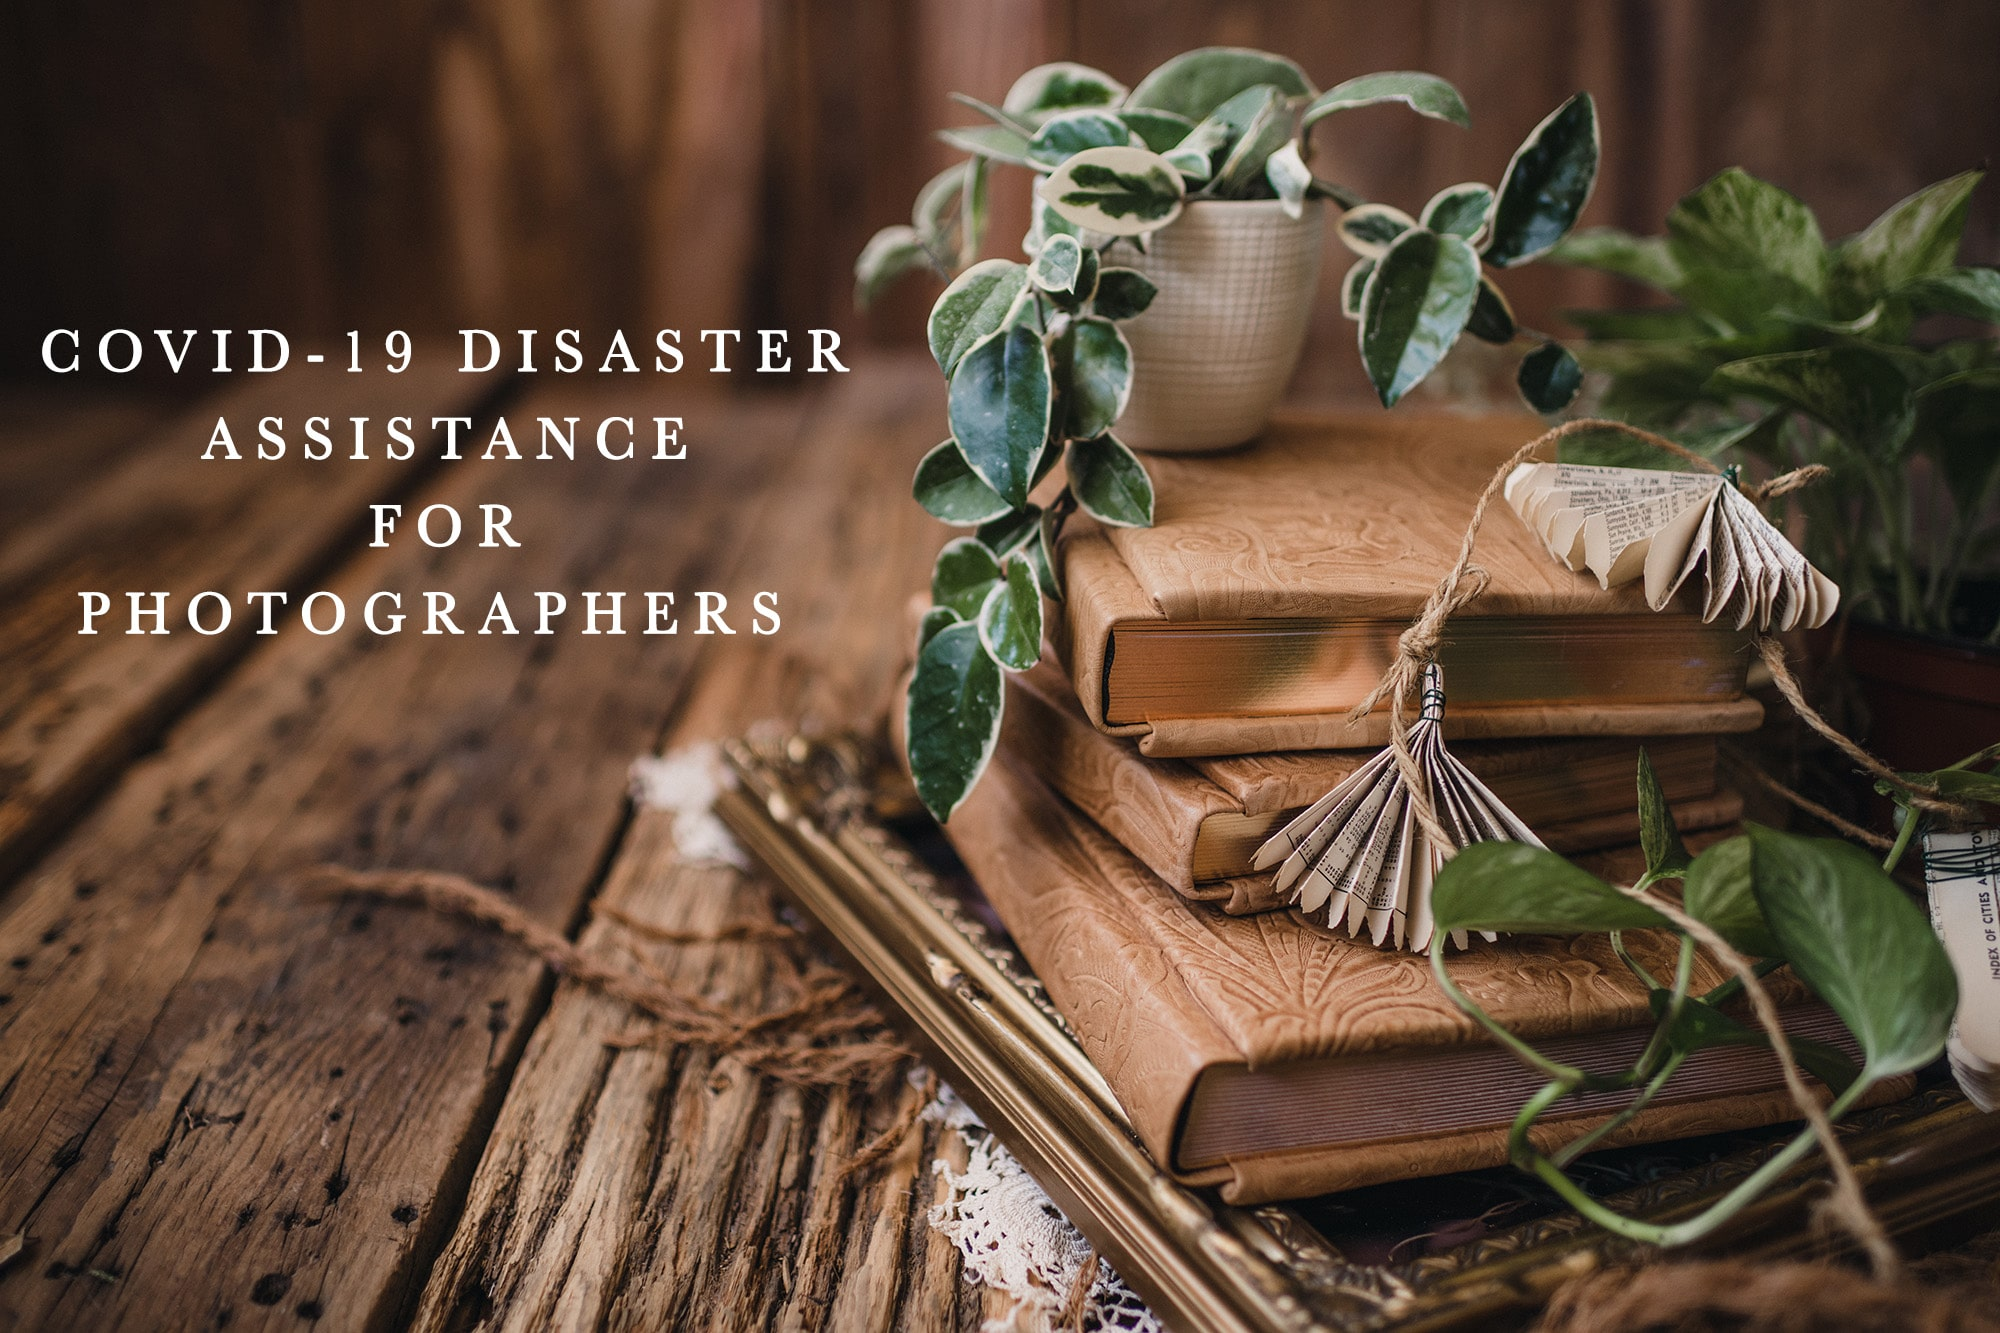 Covid-19 disaster assistance for photographers